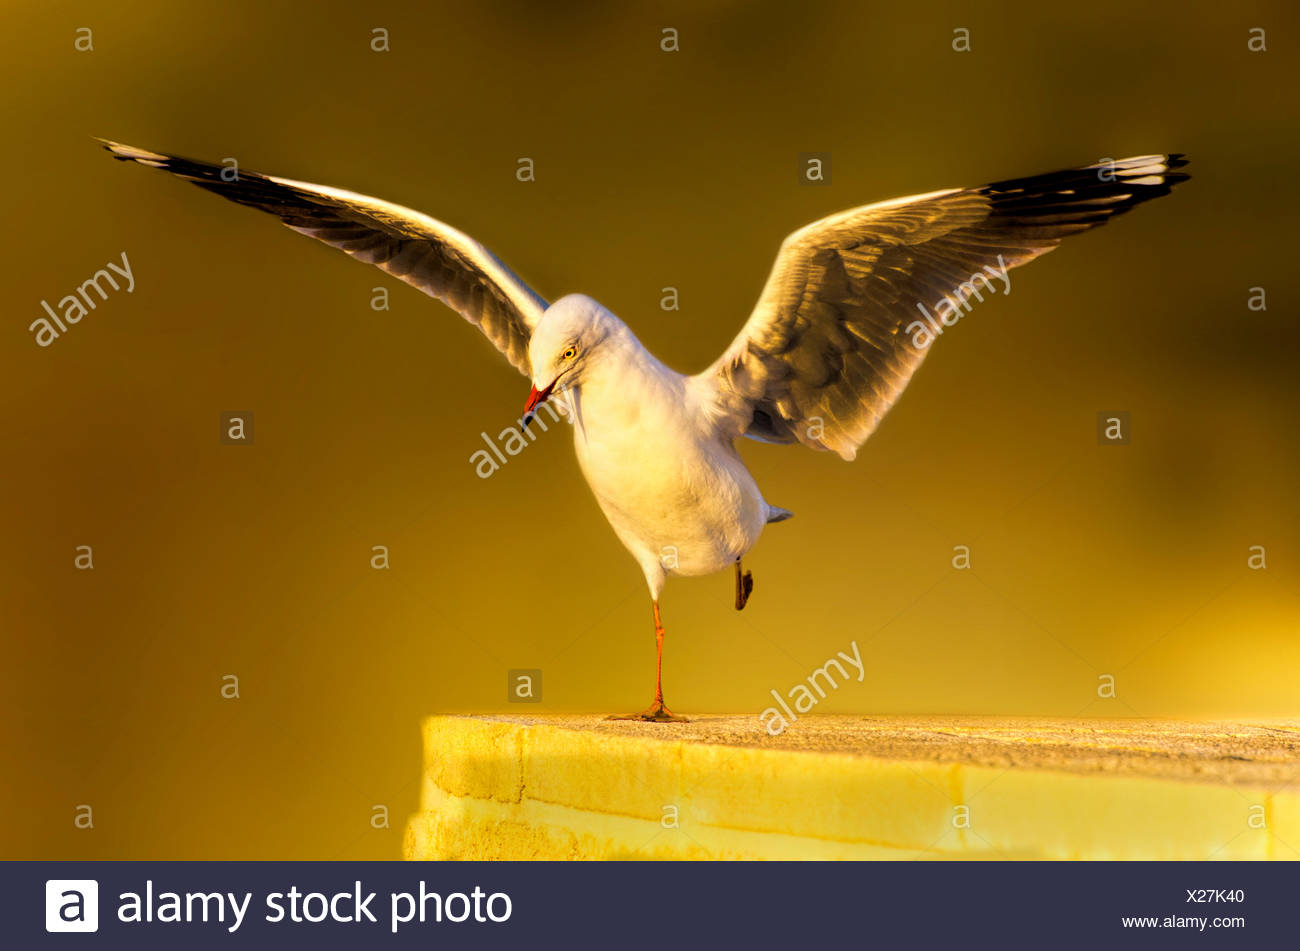 Seagull Landing on wall - Stock Image